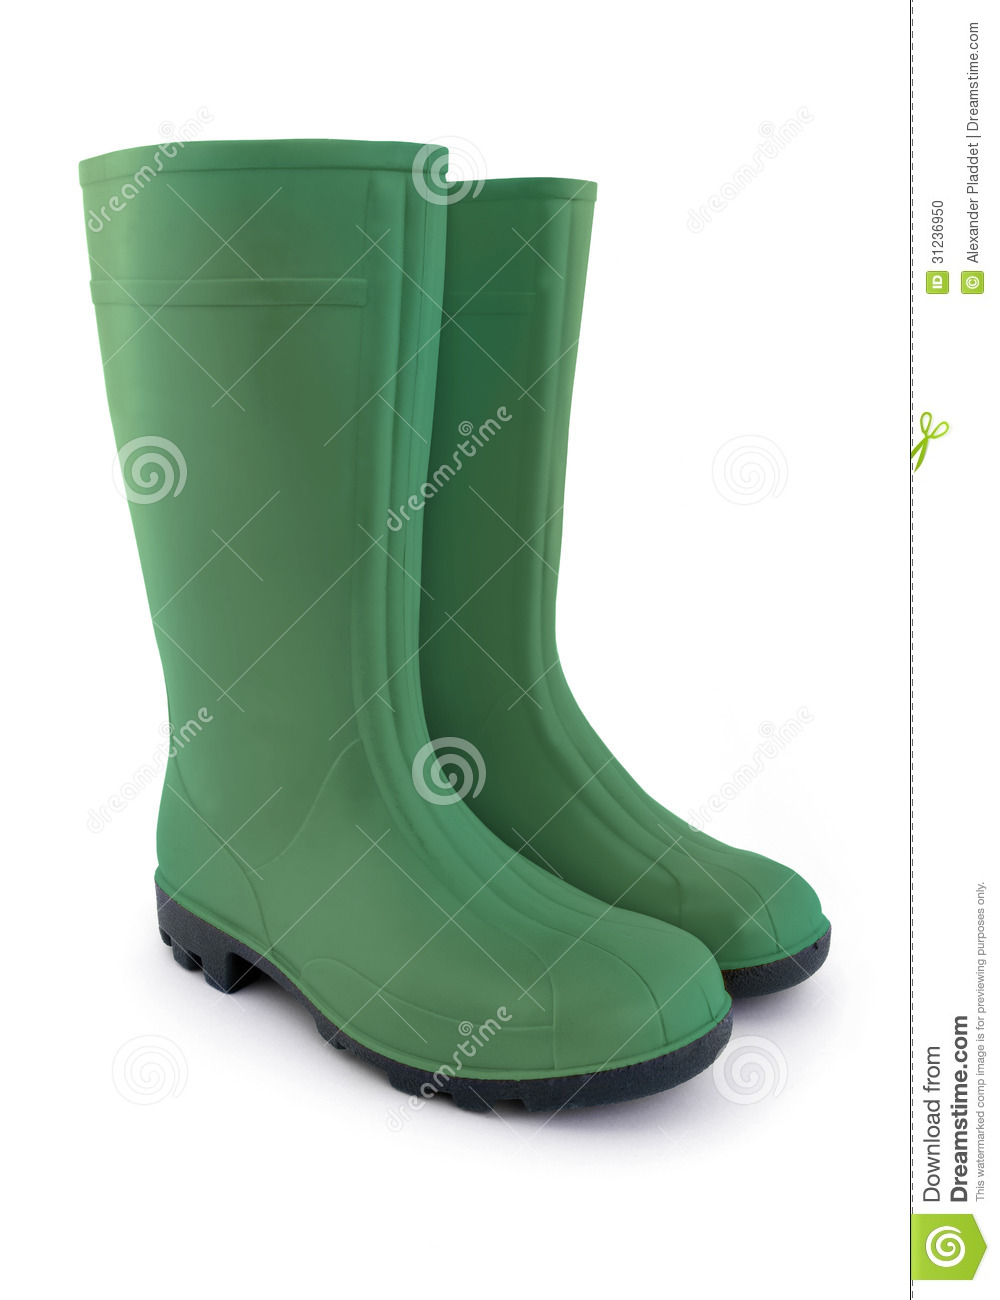 Green Rubber Boots Stock Photo Image 31236950